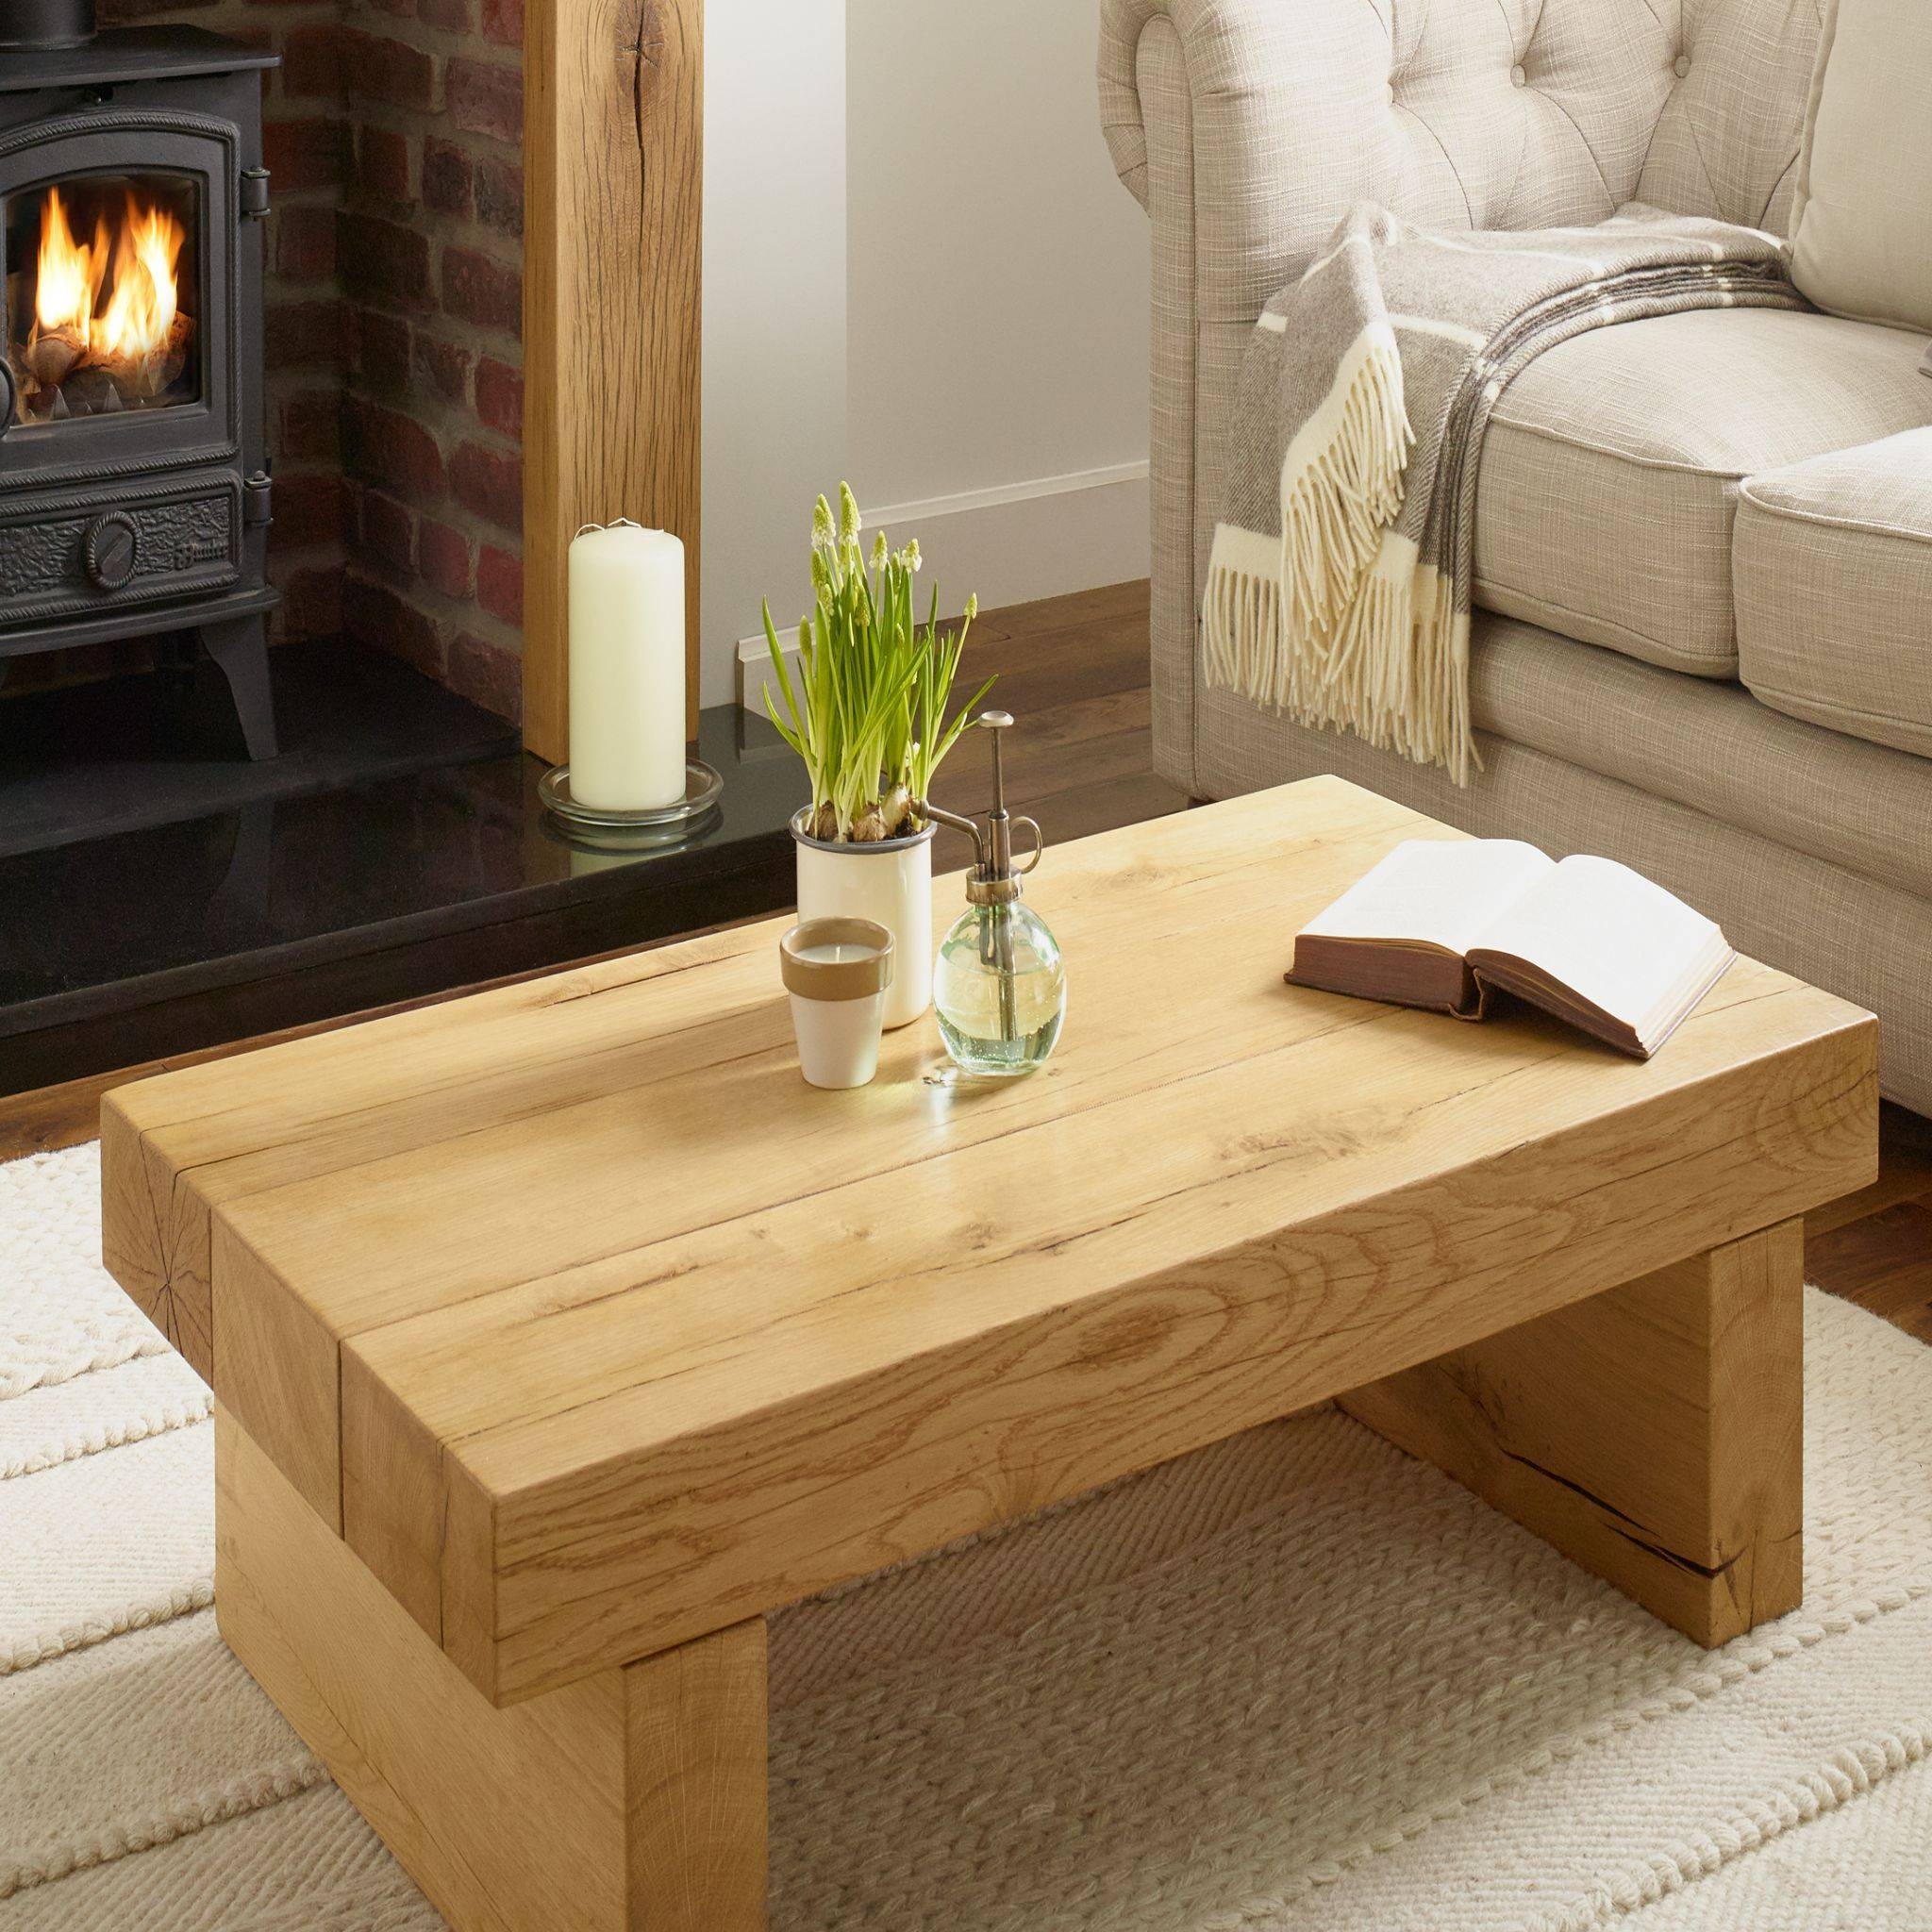 Oak Coffee Table Oxford Solid French Rustic Beam inside Oak Beam Coffee Tables (Image 9 of 15)